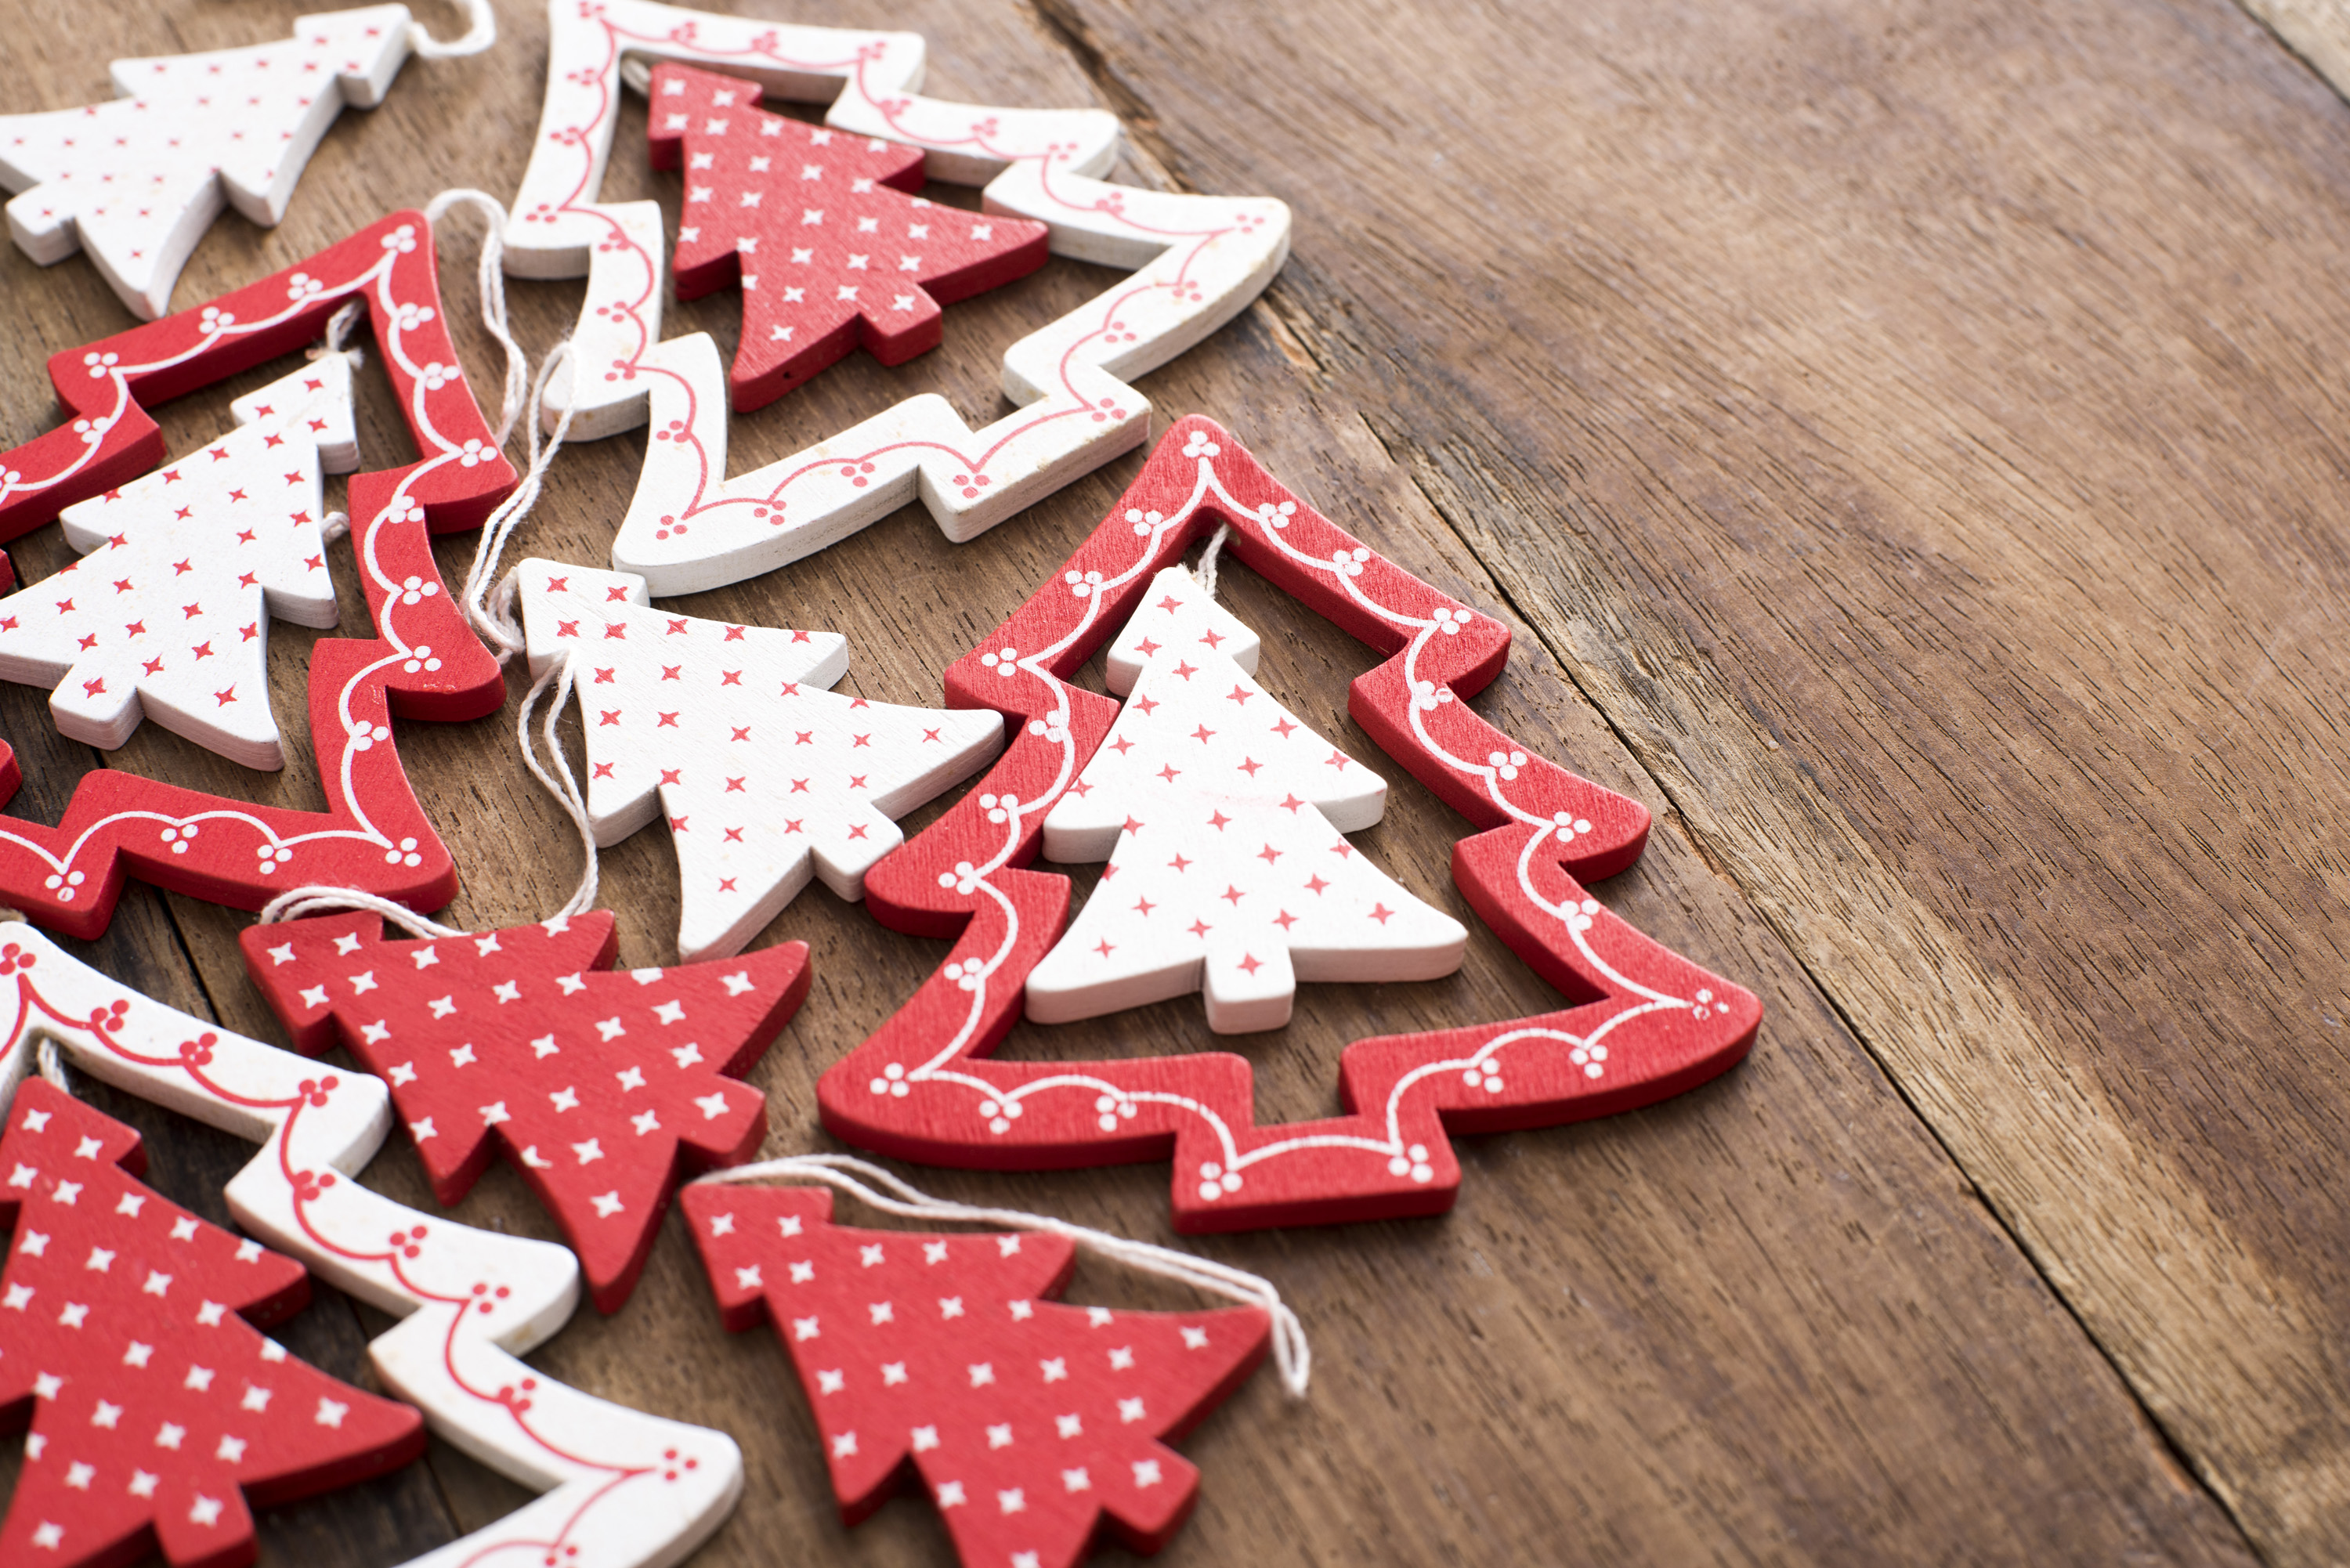 Assorted red and white wooden tree ornaments for celebrating Christmas forming a side border on a wood table with copy space